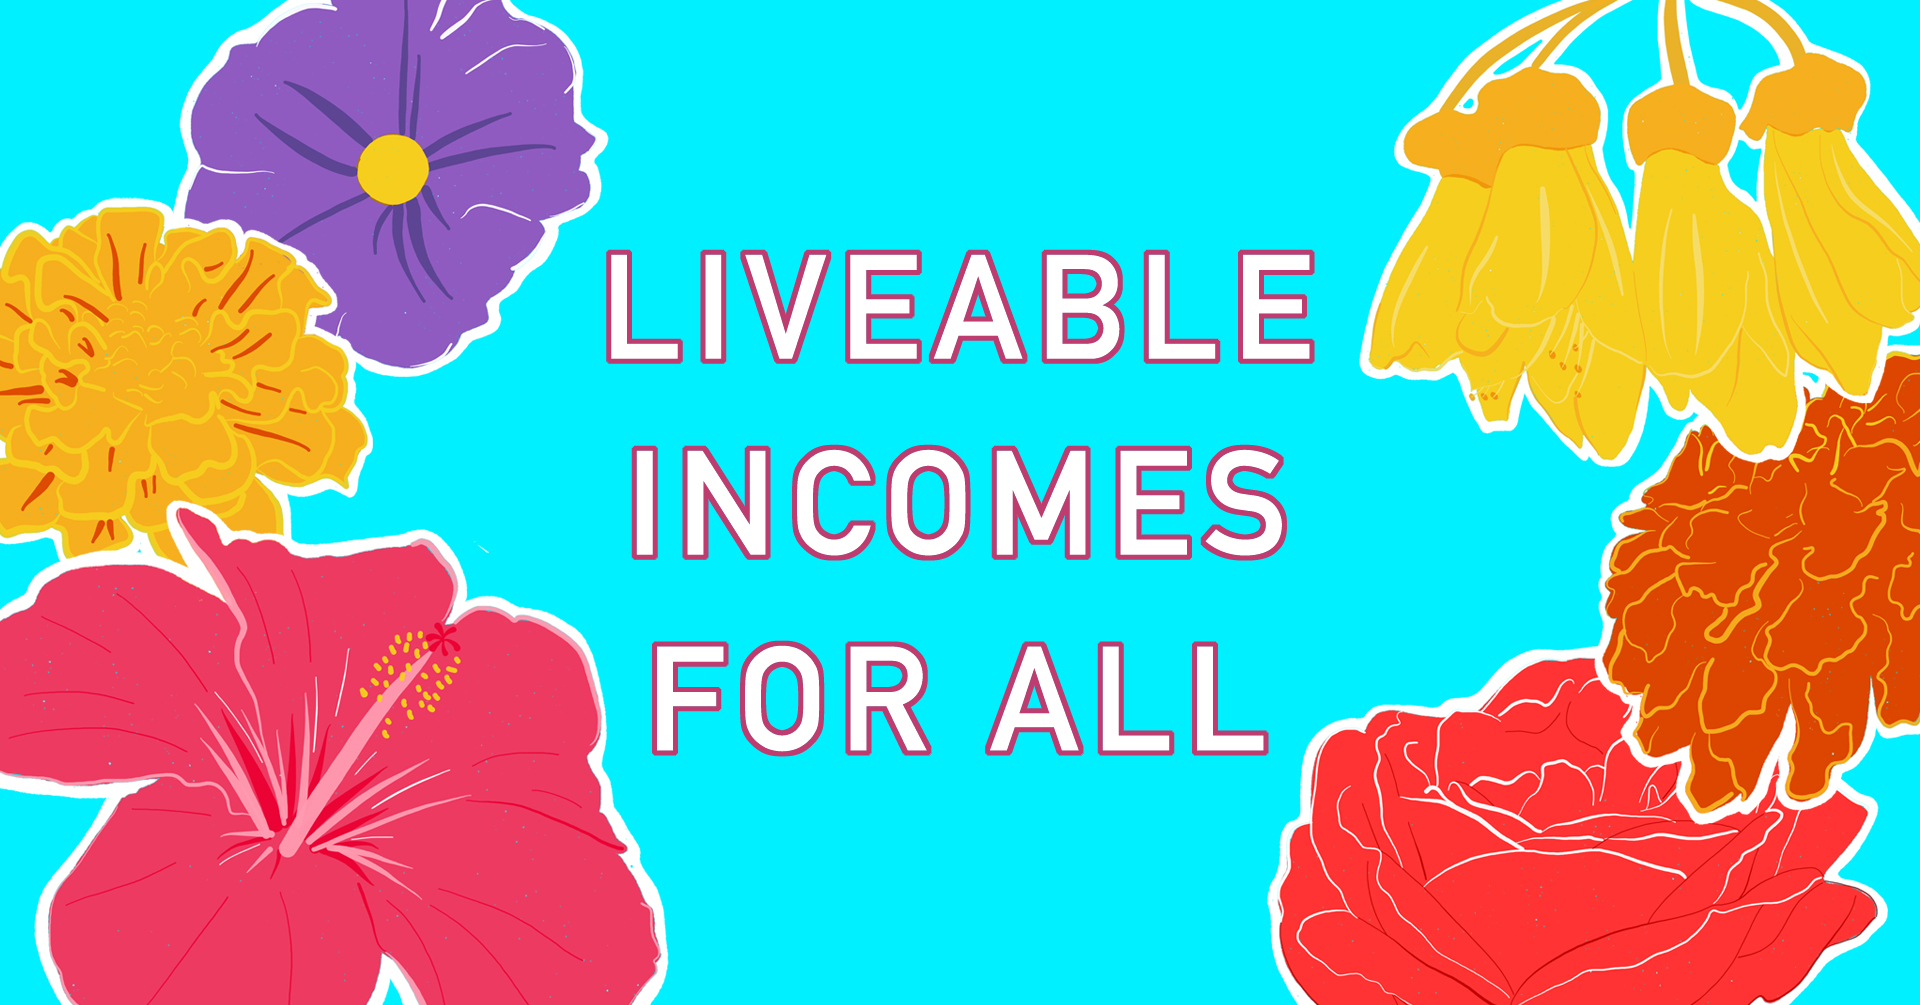 Liveable Incomes For All Banner